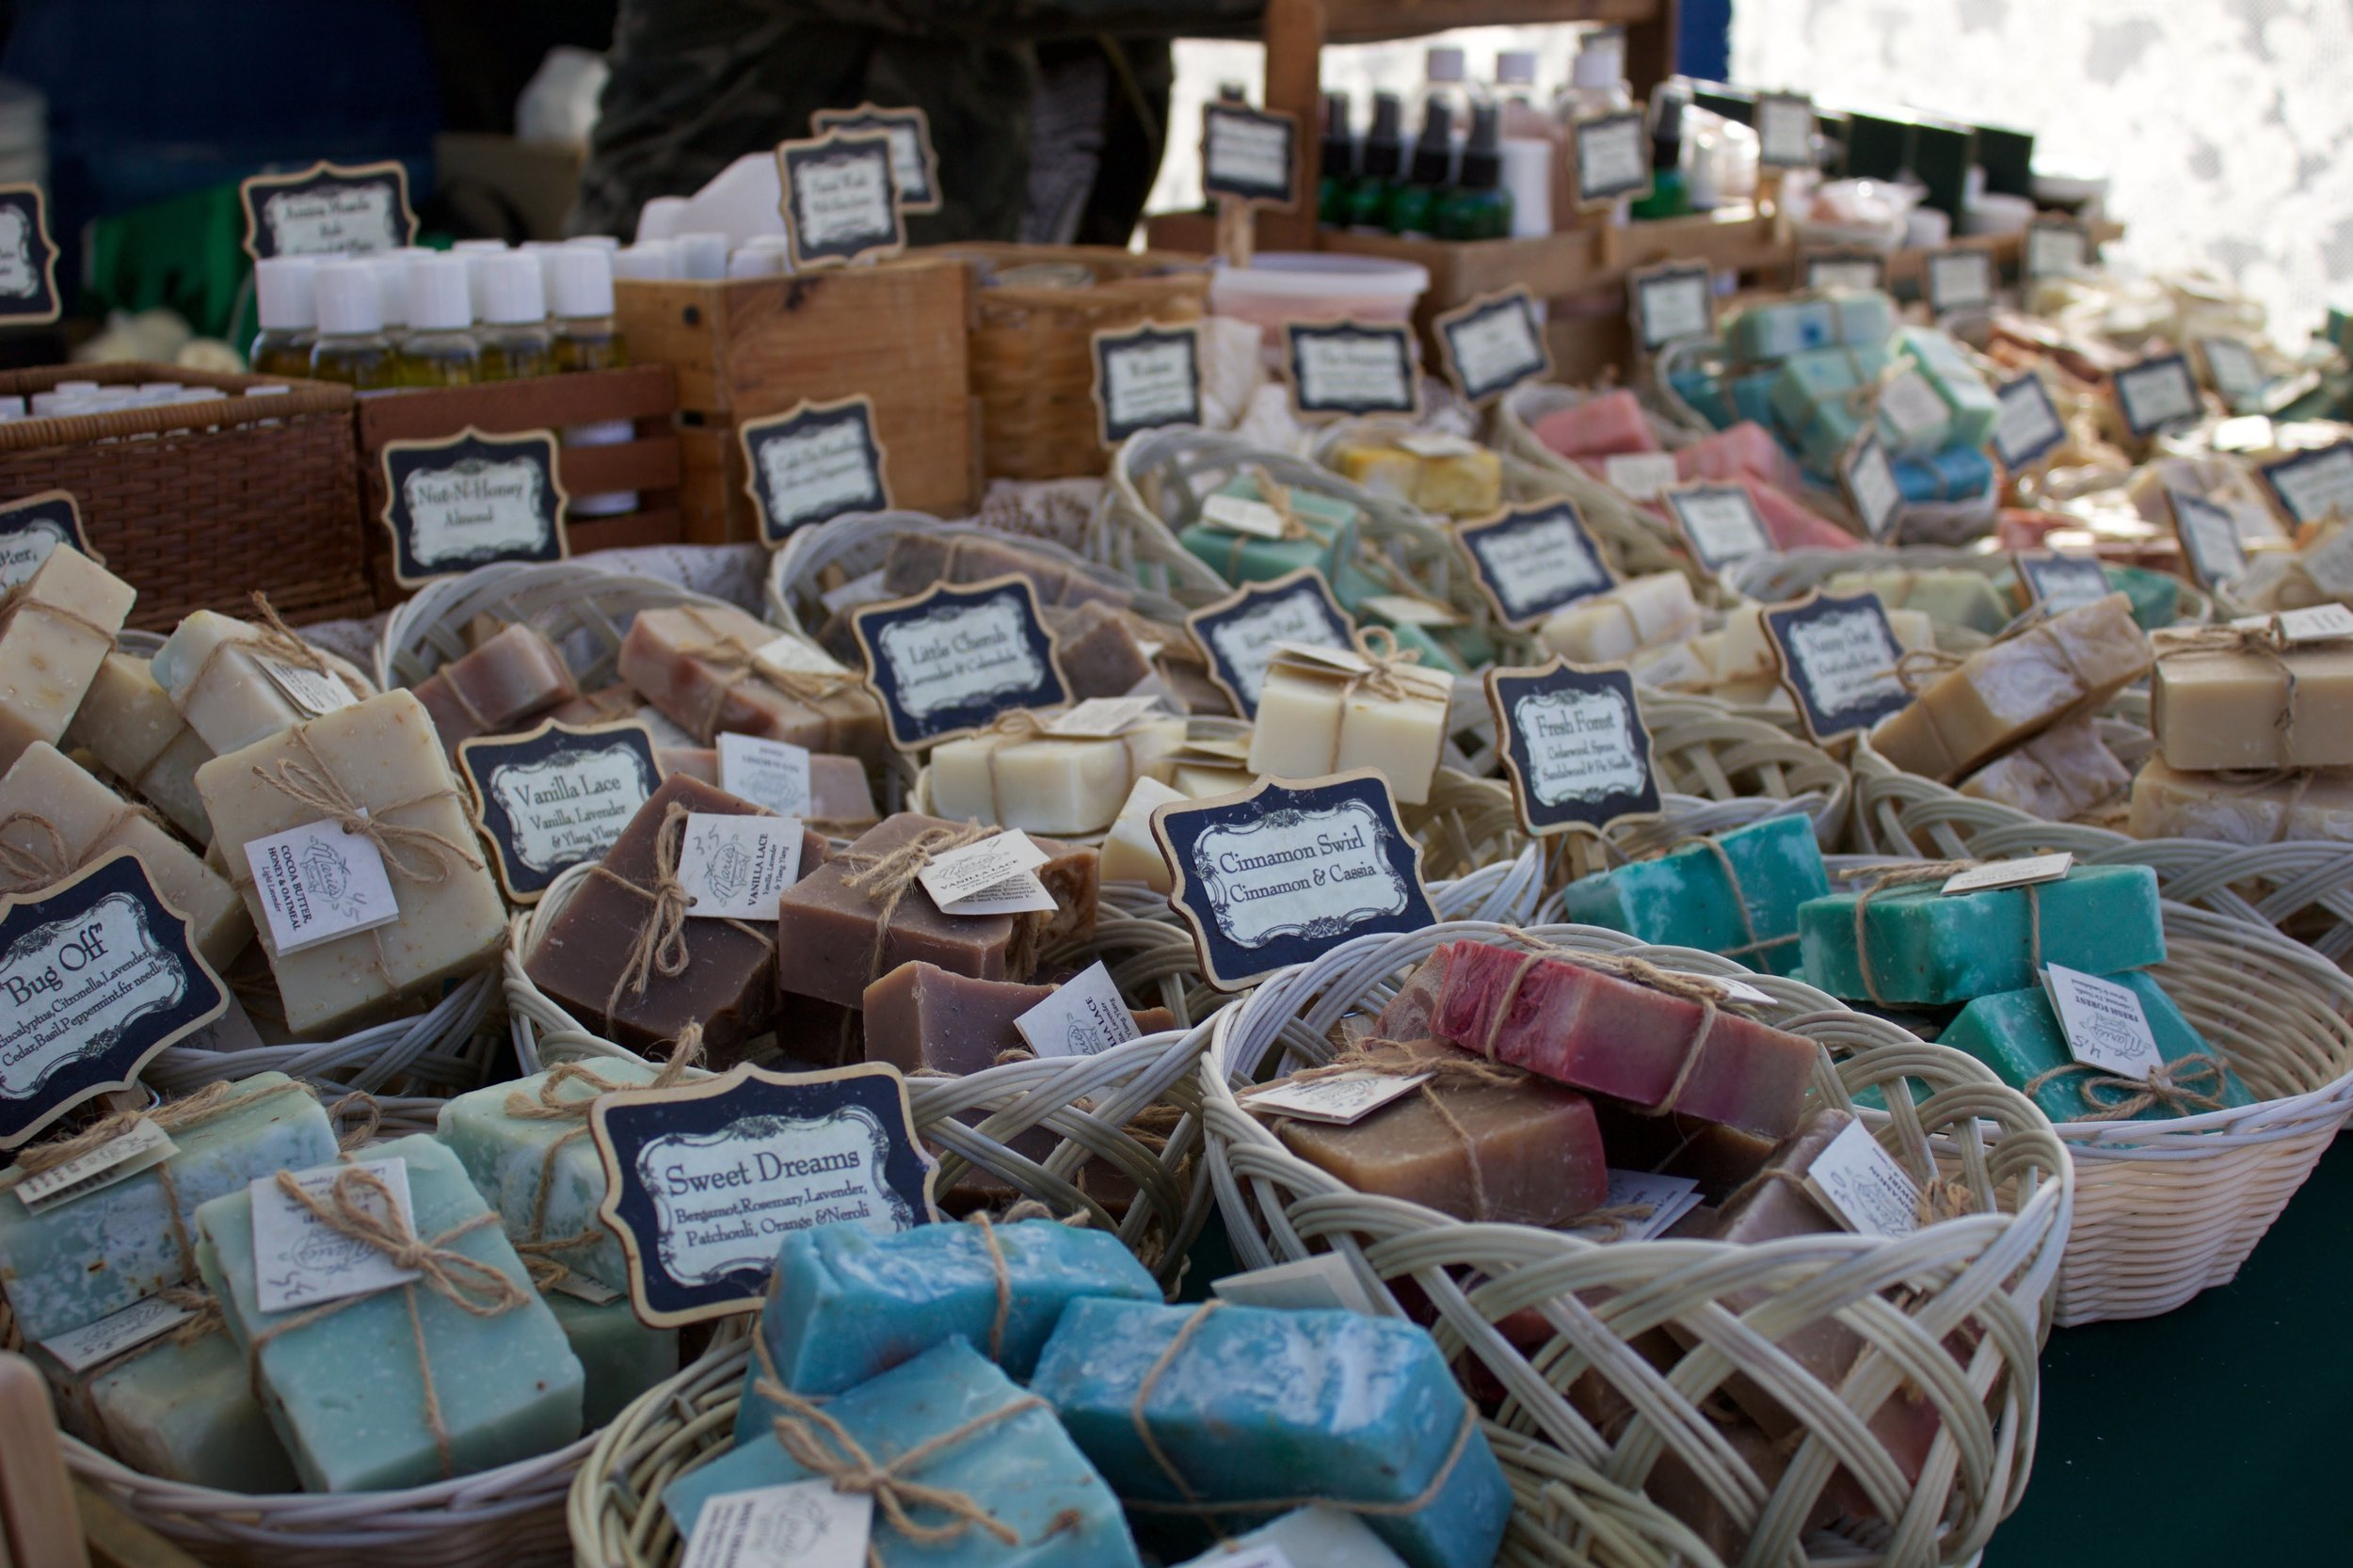 Enjoy Marie's Soap Company small batch, all-natural, hand-crafted soaps and personal care products. They reflect our commitment to create a healthy alternative to body care. They use the finest oil blends and dried herbs to give each batch its own originality.